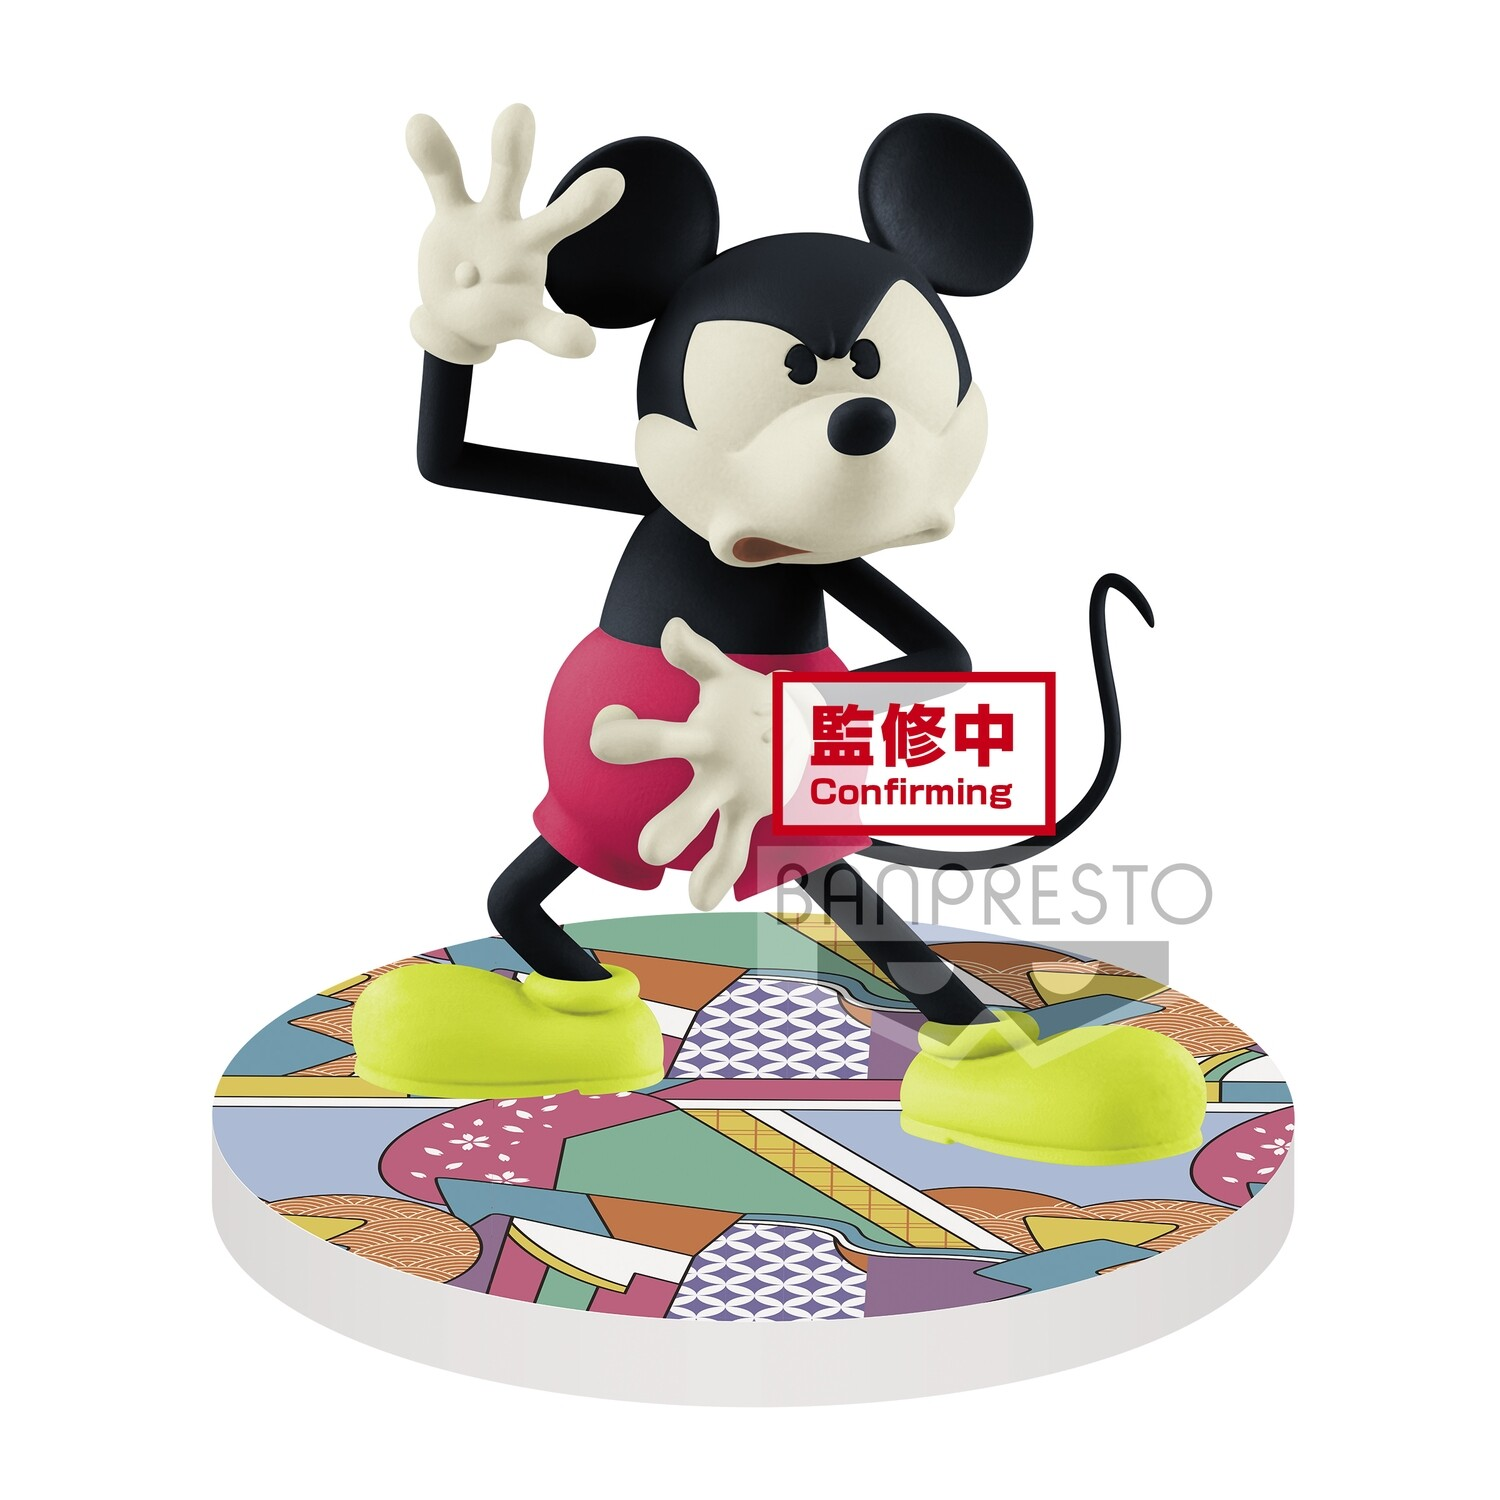 Banpresto DISNEY CHARACTERS MICKEY MOUSE -TOUCH! JAPONISM-(VER.A)